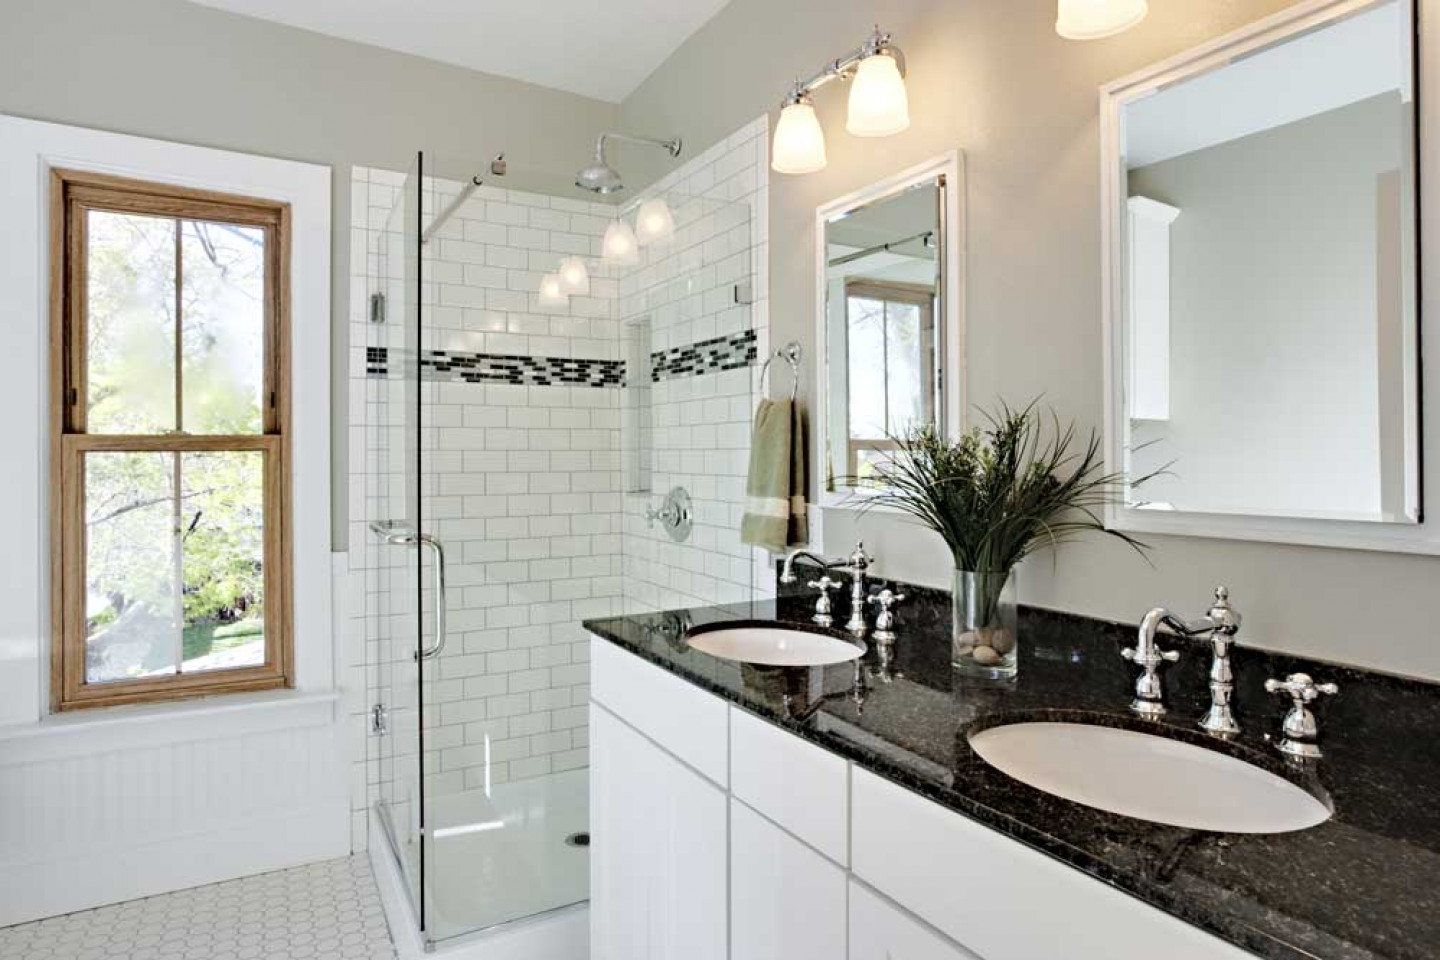 Refresh Your Home With a Bathroom Upgrade